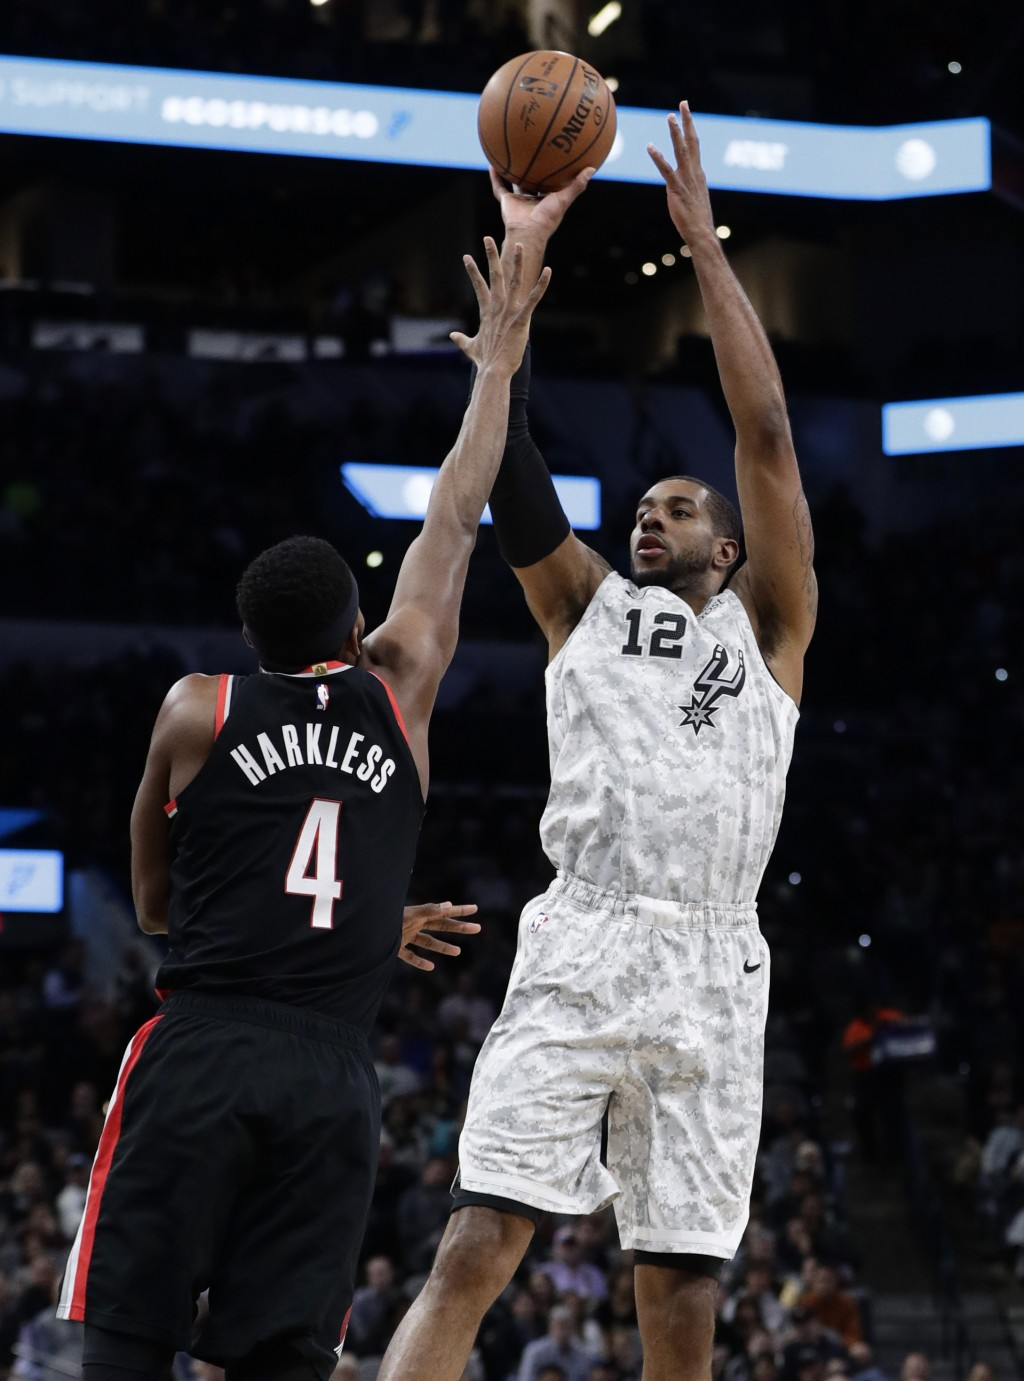 San Antonio Spurs center LaMarcus Aldridge (12) shoots over Portland Trail Blazers forward Maurice Harkless (4) during the first half of an NBA basket